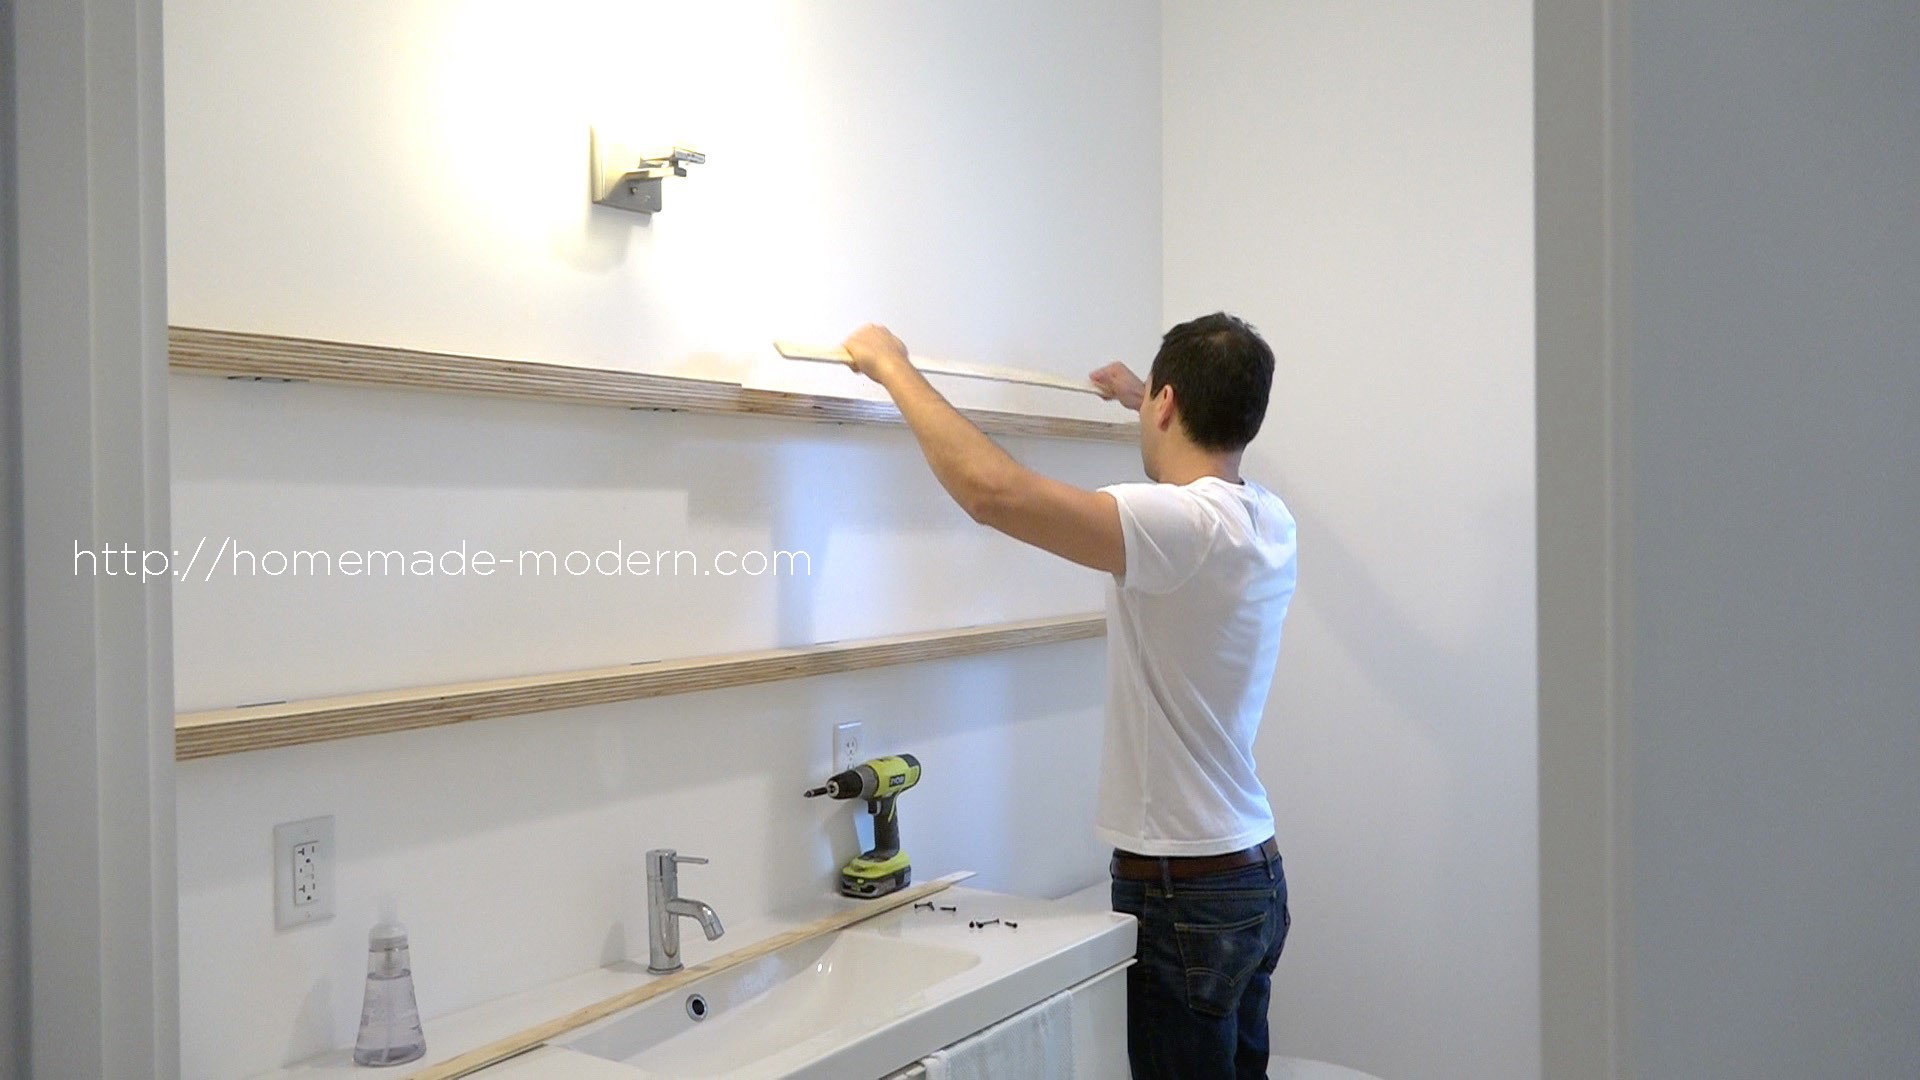 This Bathroom Mirror Features Diy Hardware That Slides On Plywood Shelves Full Instructions Can Be